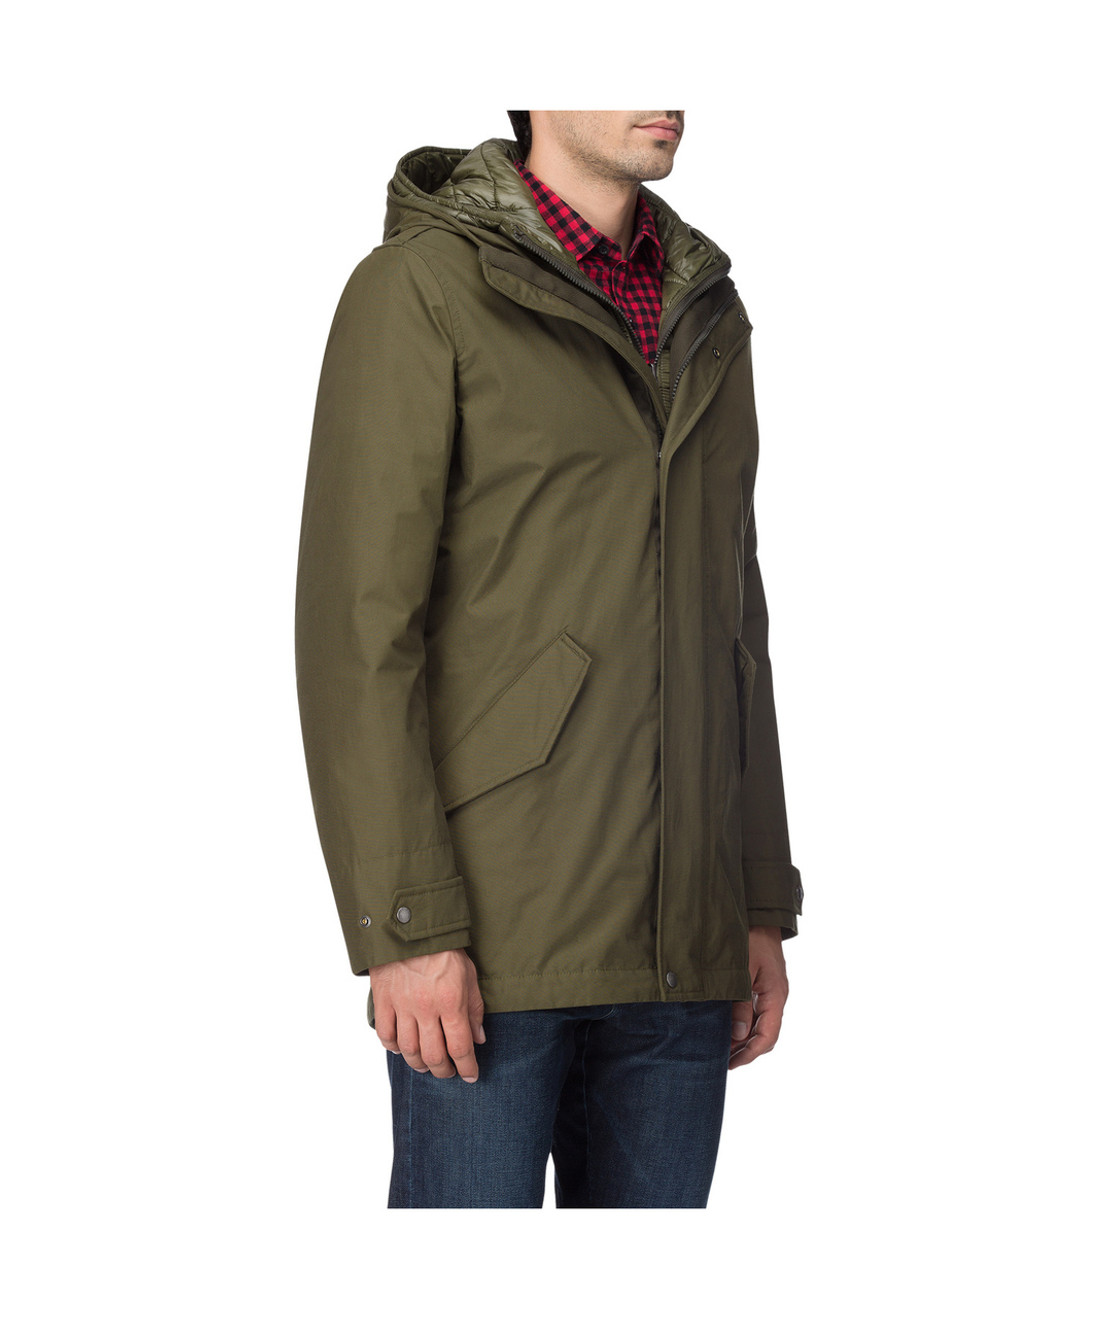 e28d54d3692 Men's Long Military Parka - John Rich & Bros. (WO1079)